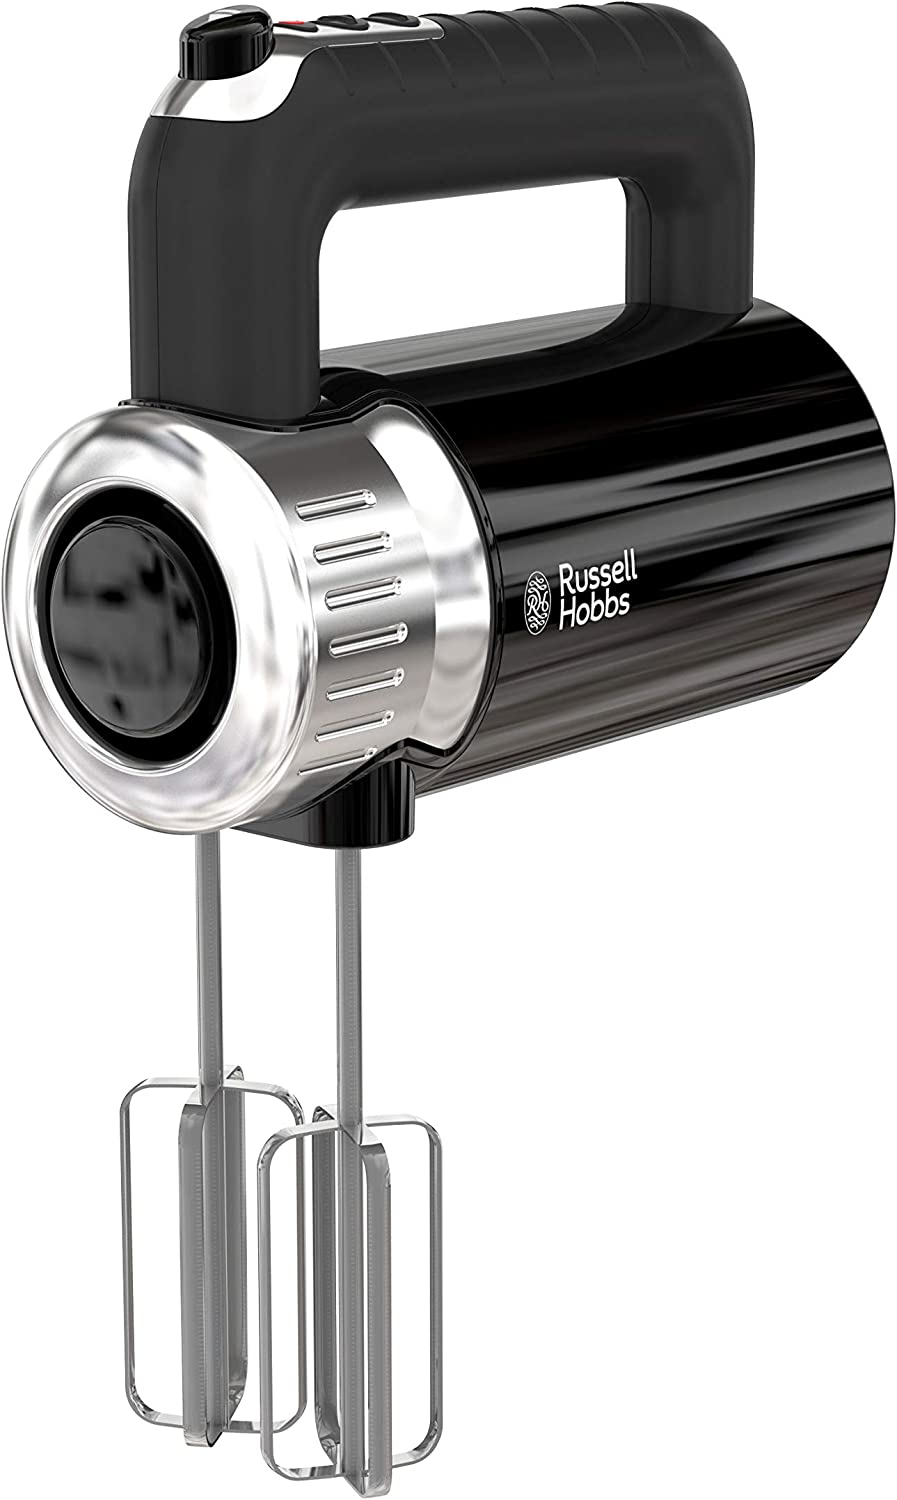 Russell Hobbs MX3100RDR Retro Style Hand Mixer, 4 Speeds + Turbo Boost, Black